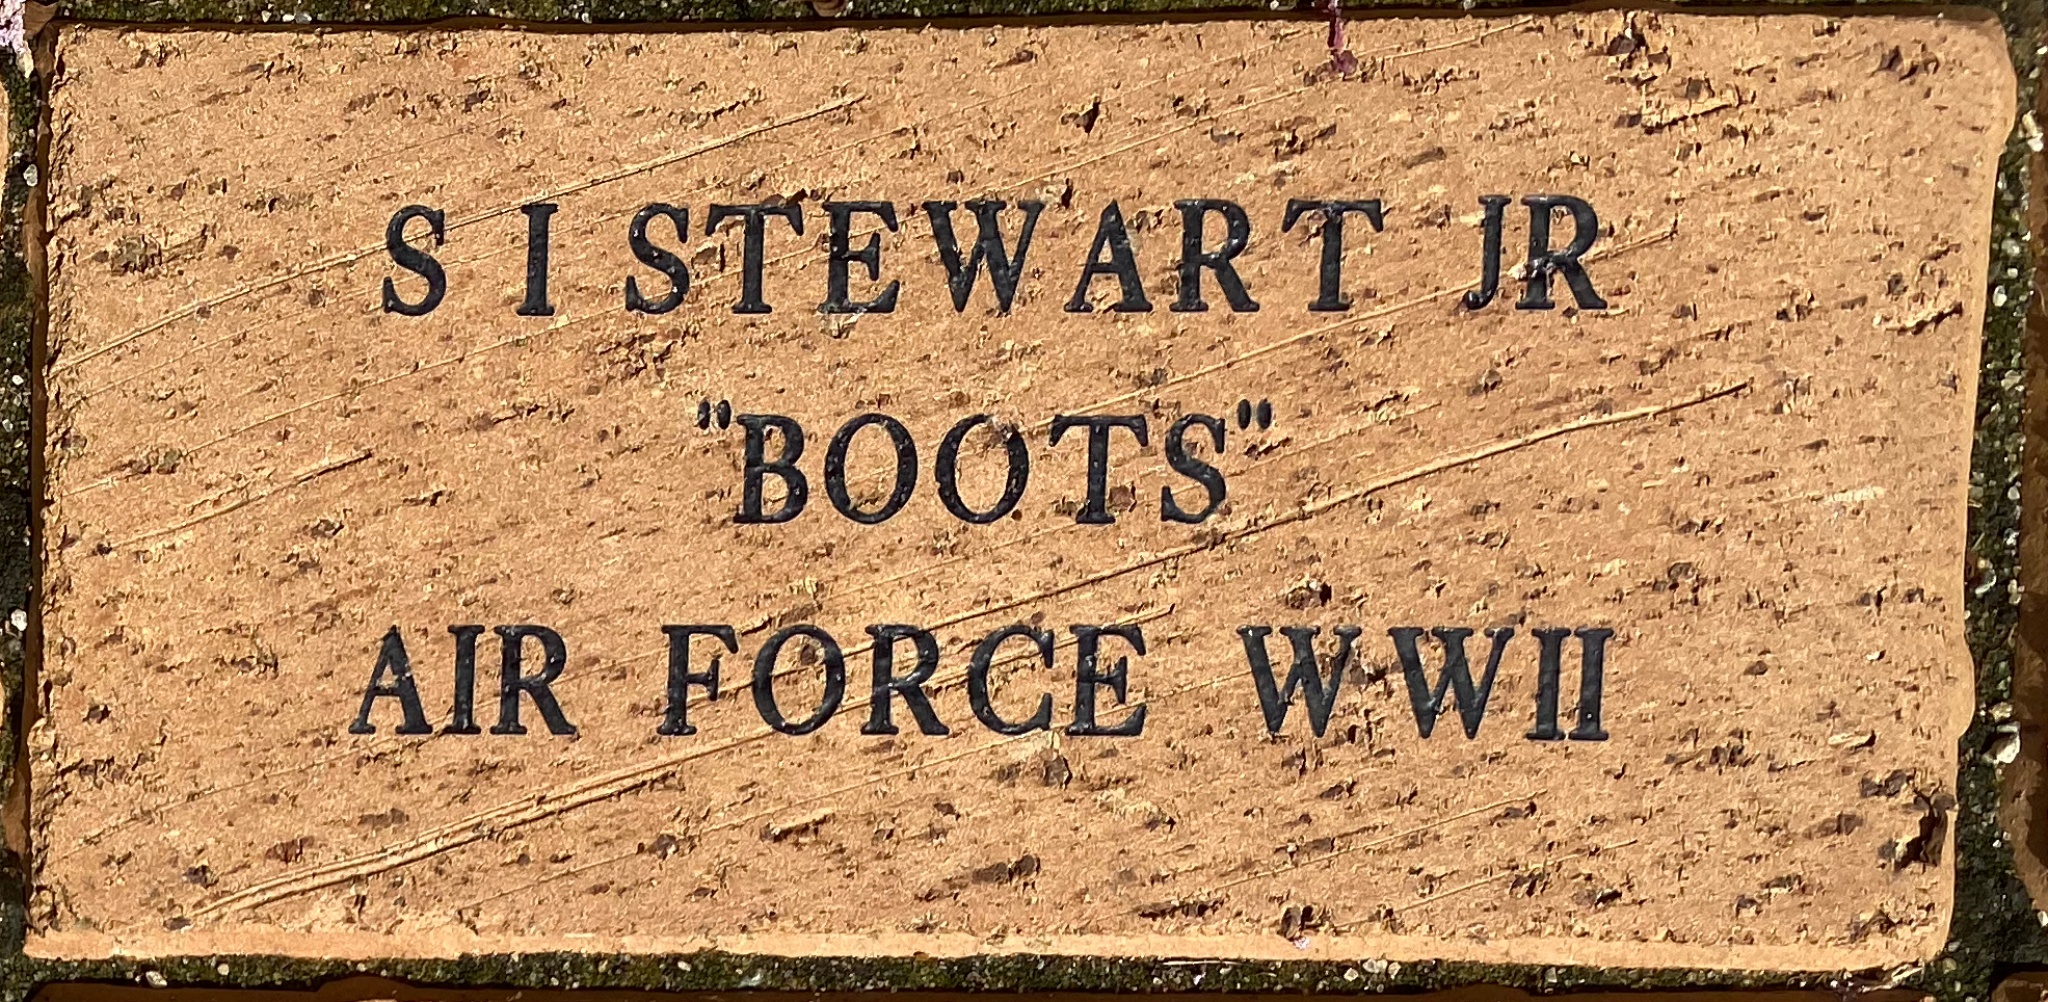 "S I STEWART JR ""BOOTS"" AIR FORCE WWII"